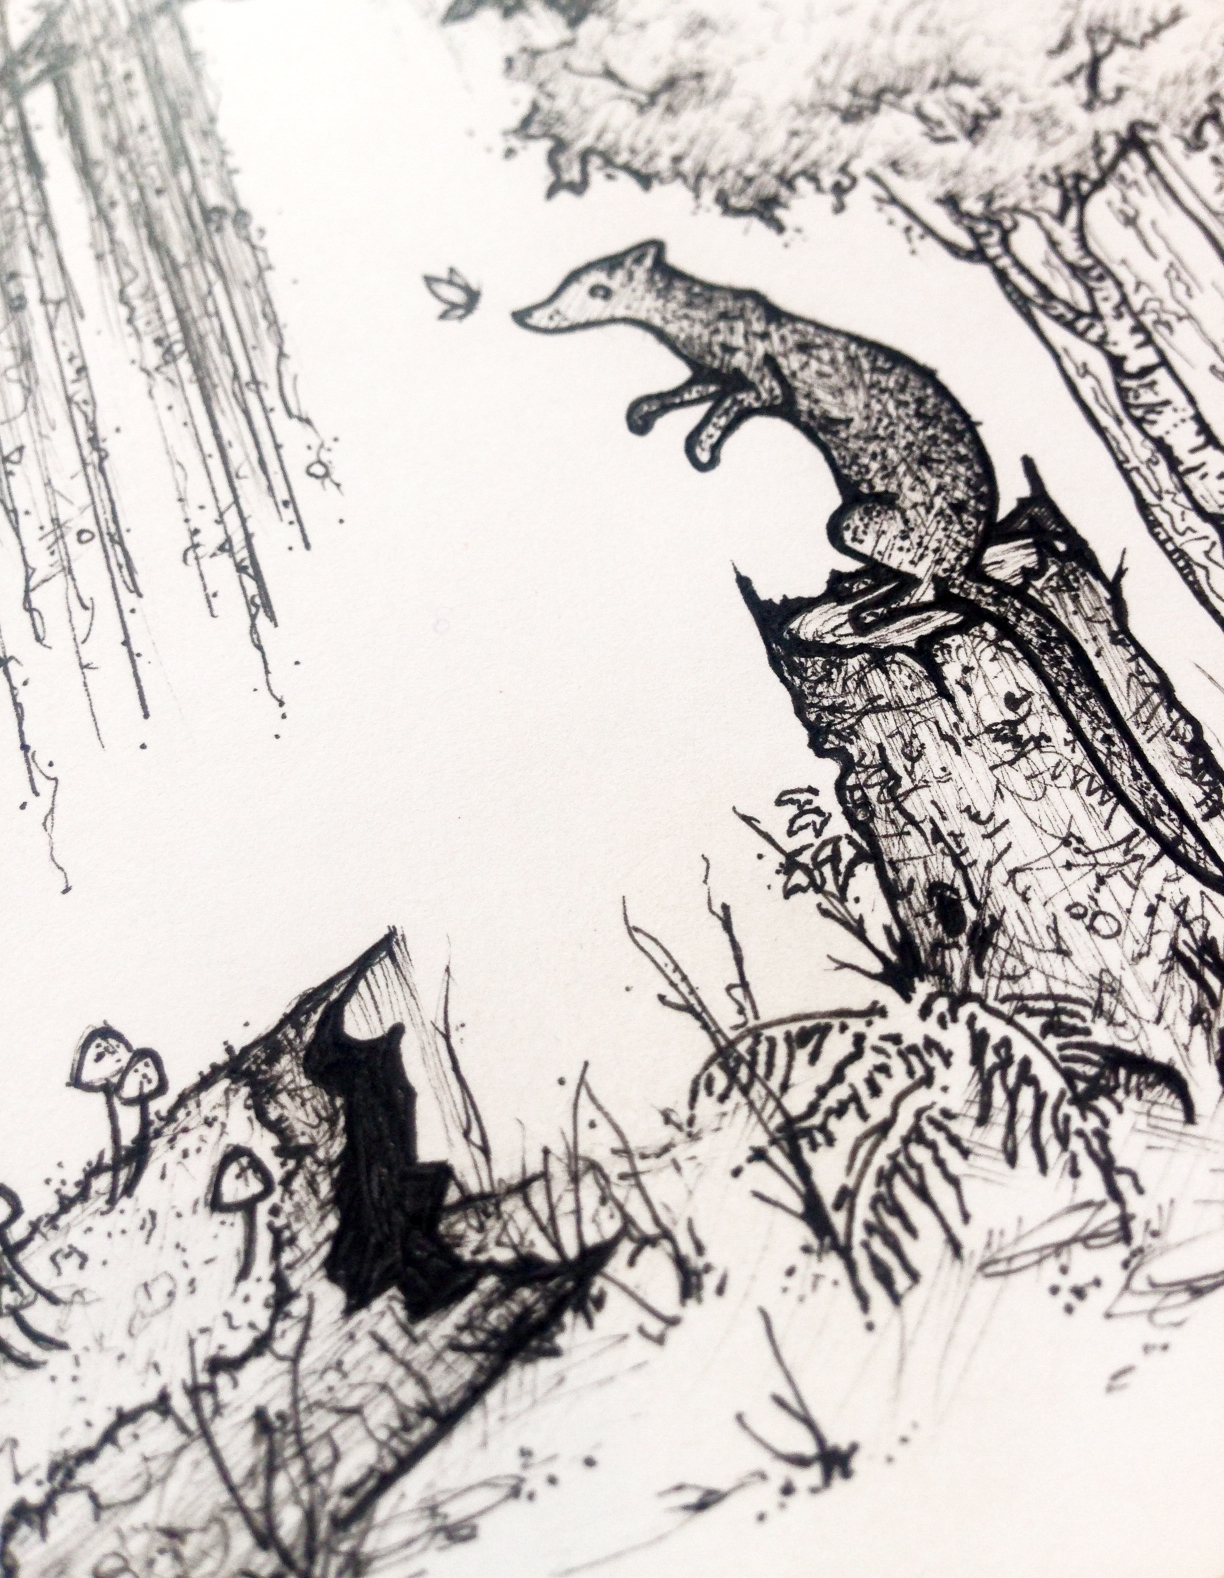 Weasel in the Woods (detail)